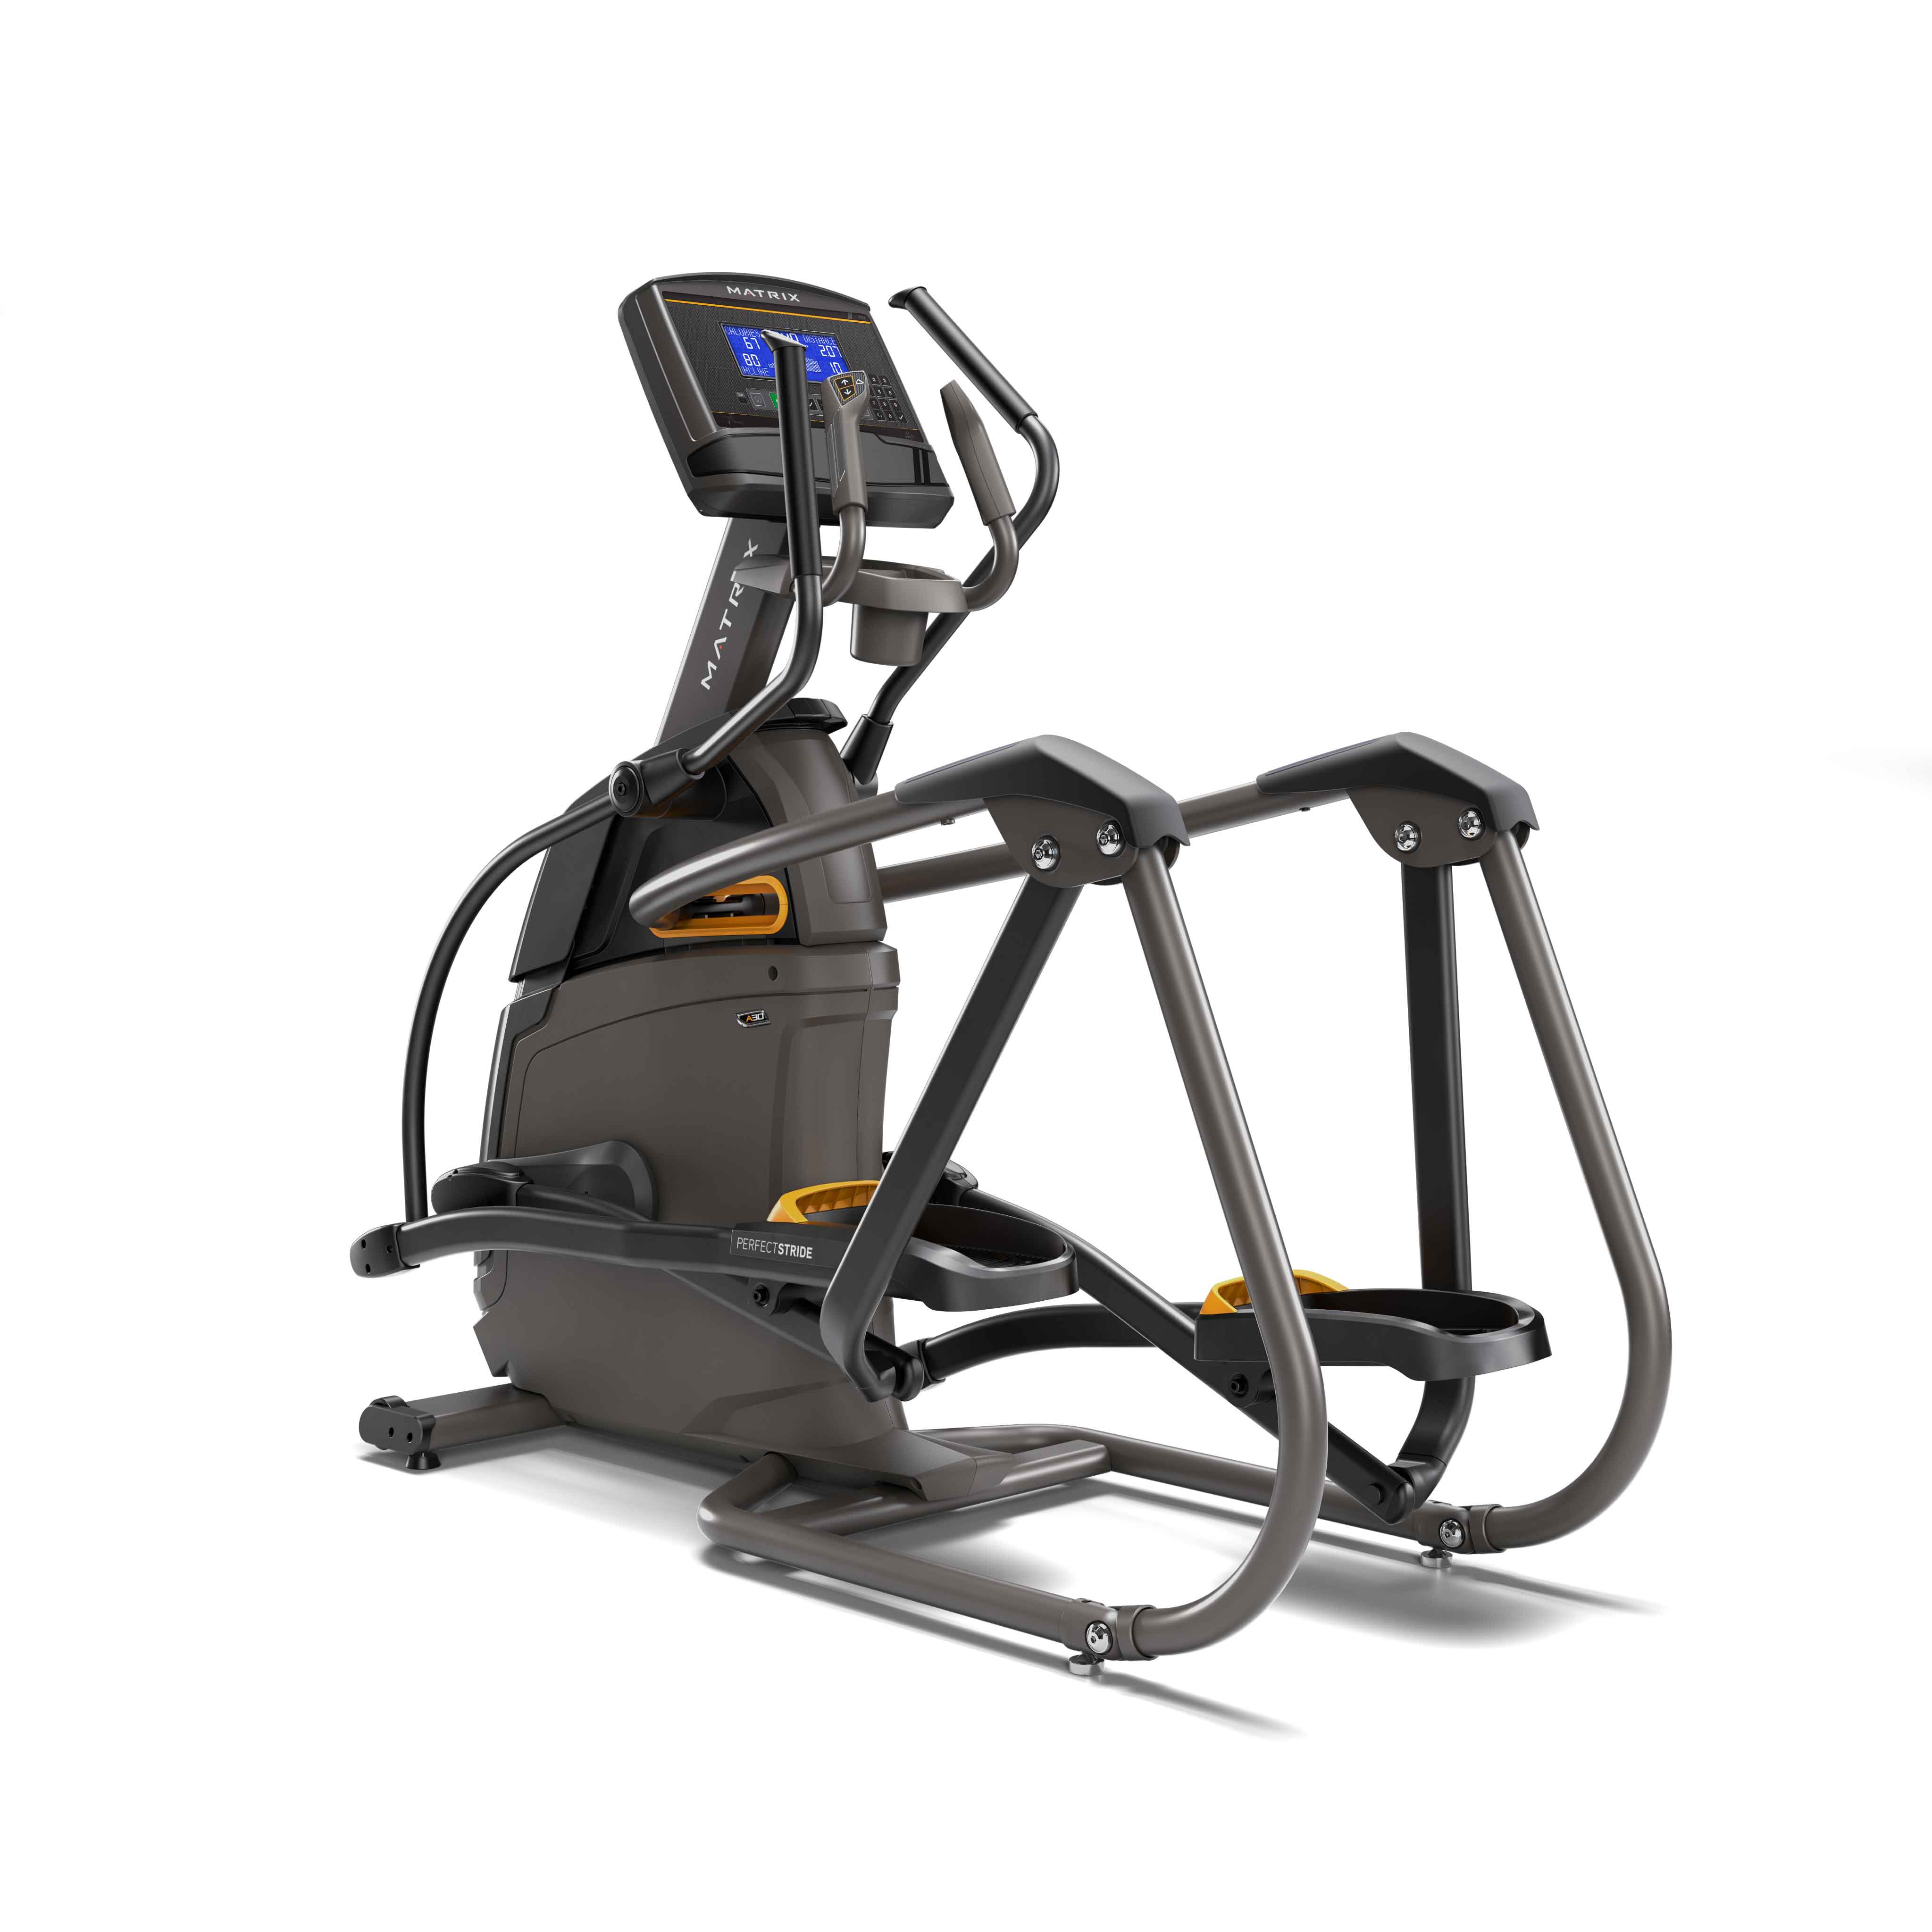 Horizon Elliptical Trainer Review: Matrix Fitness A30 Ascent Trainer > Treadmill Outlet